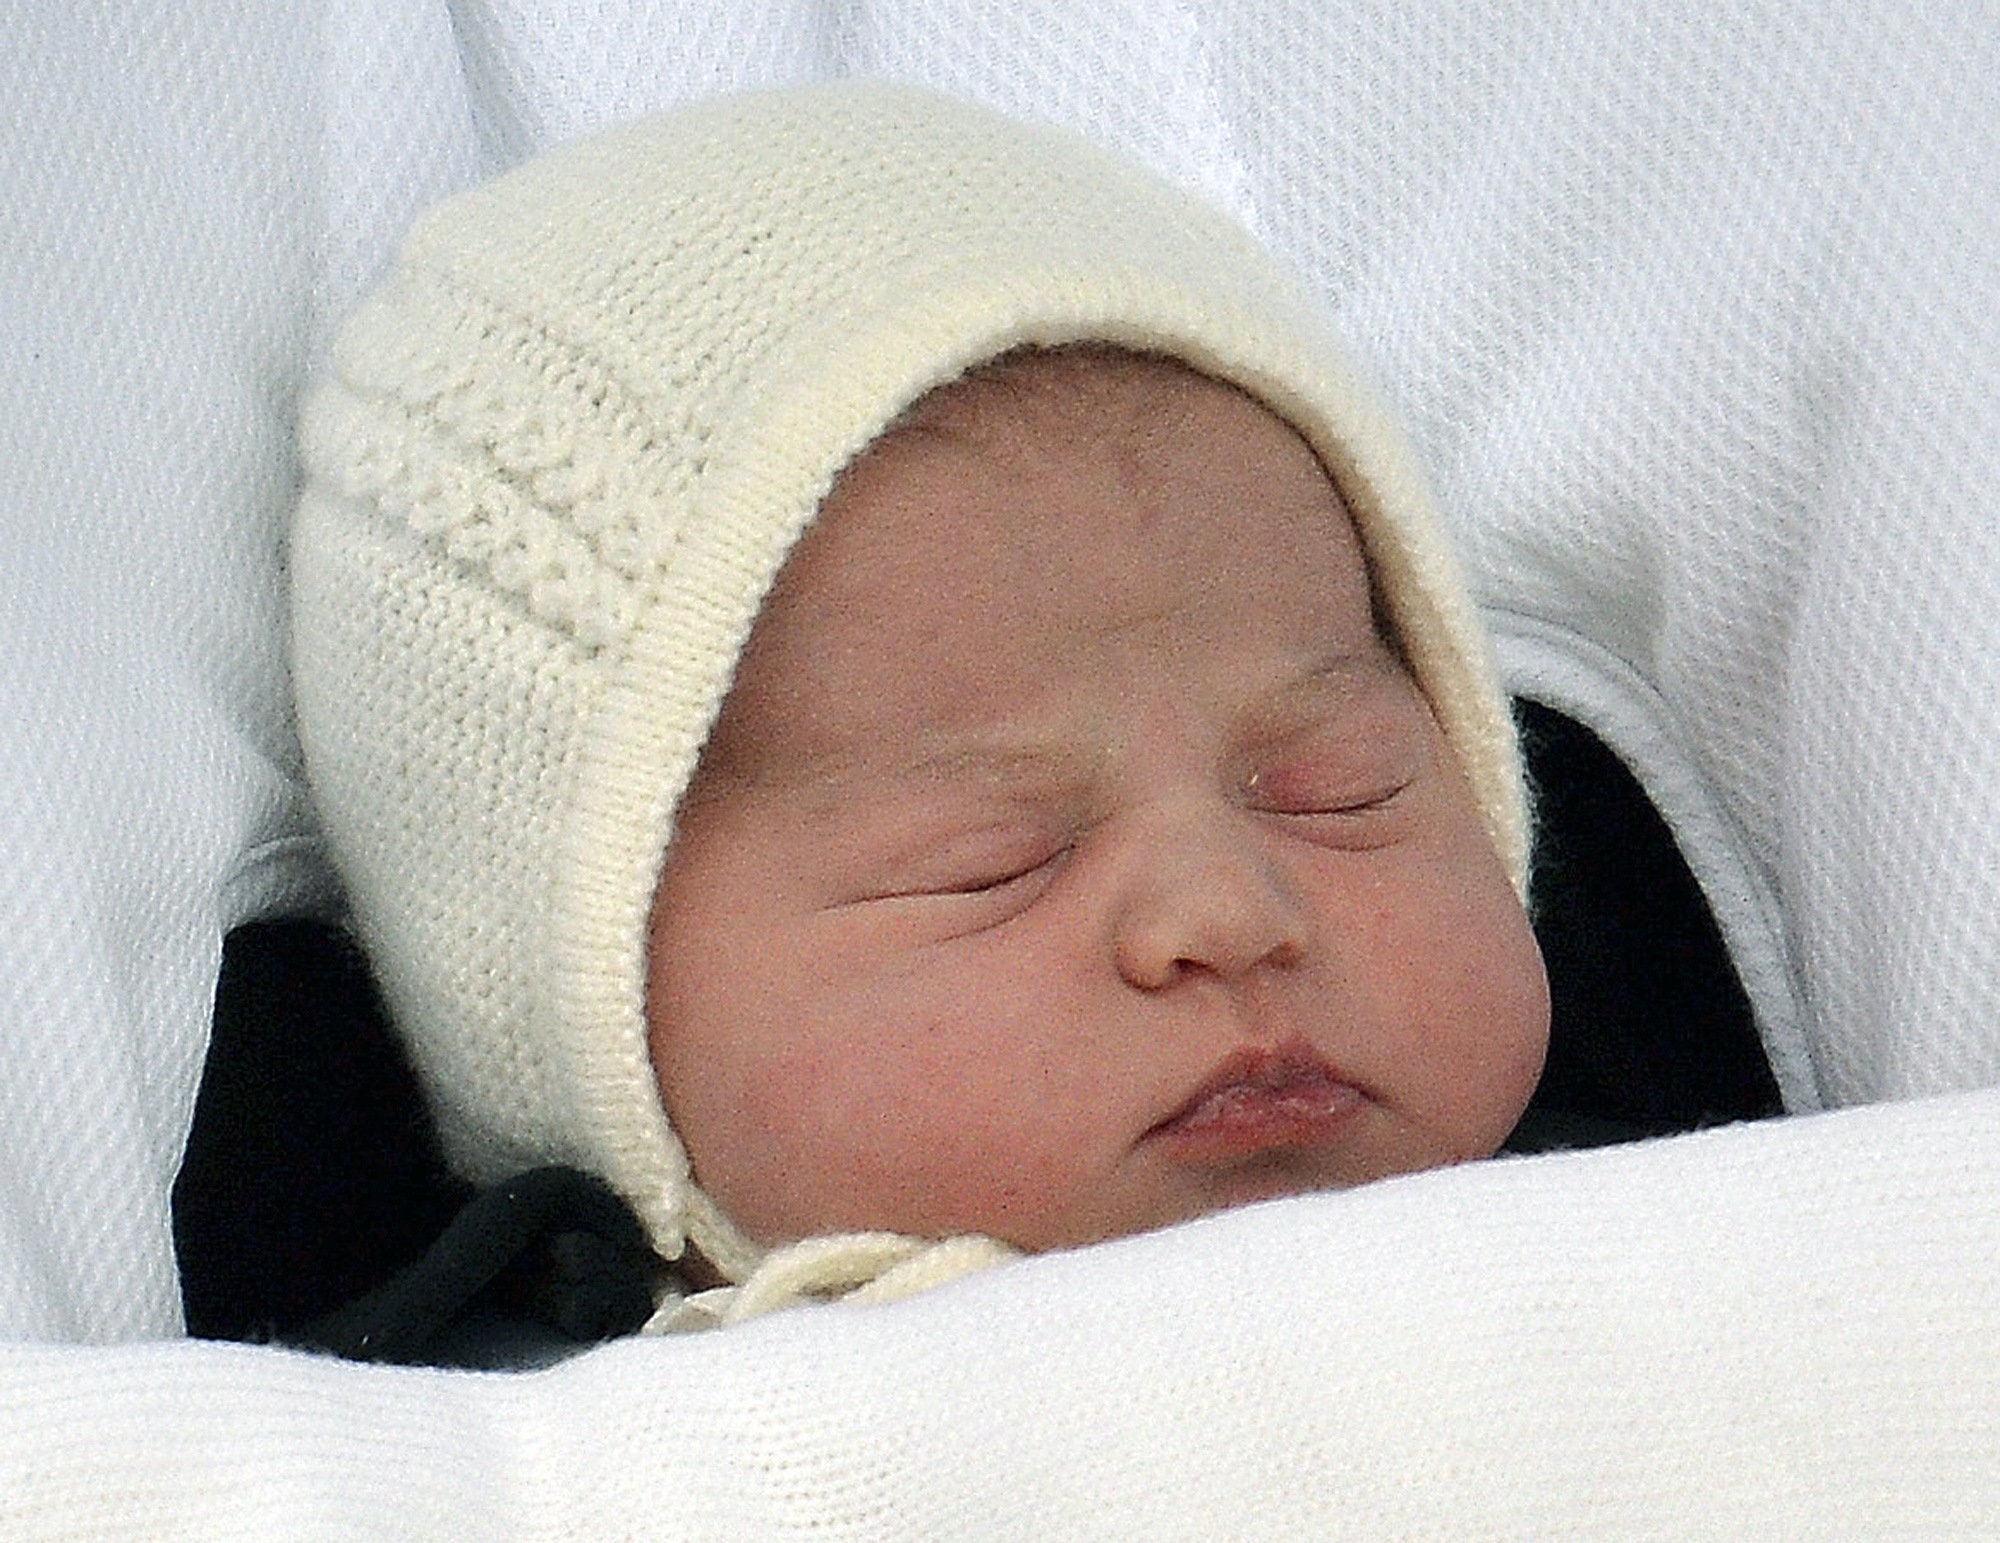 Queen Elizabeth II meets latest addition to family